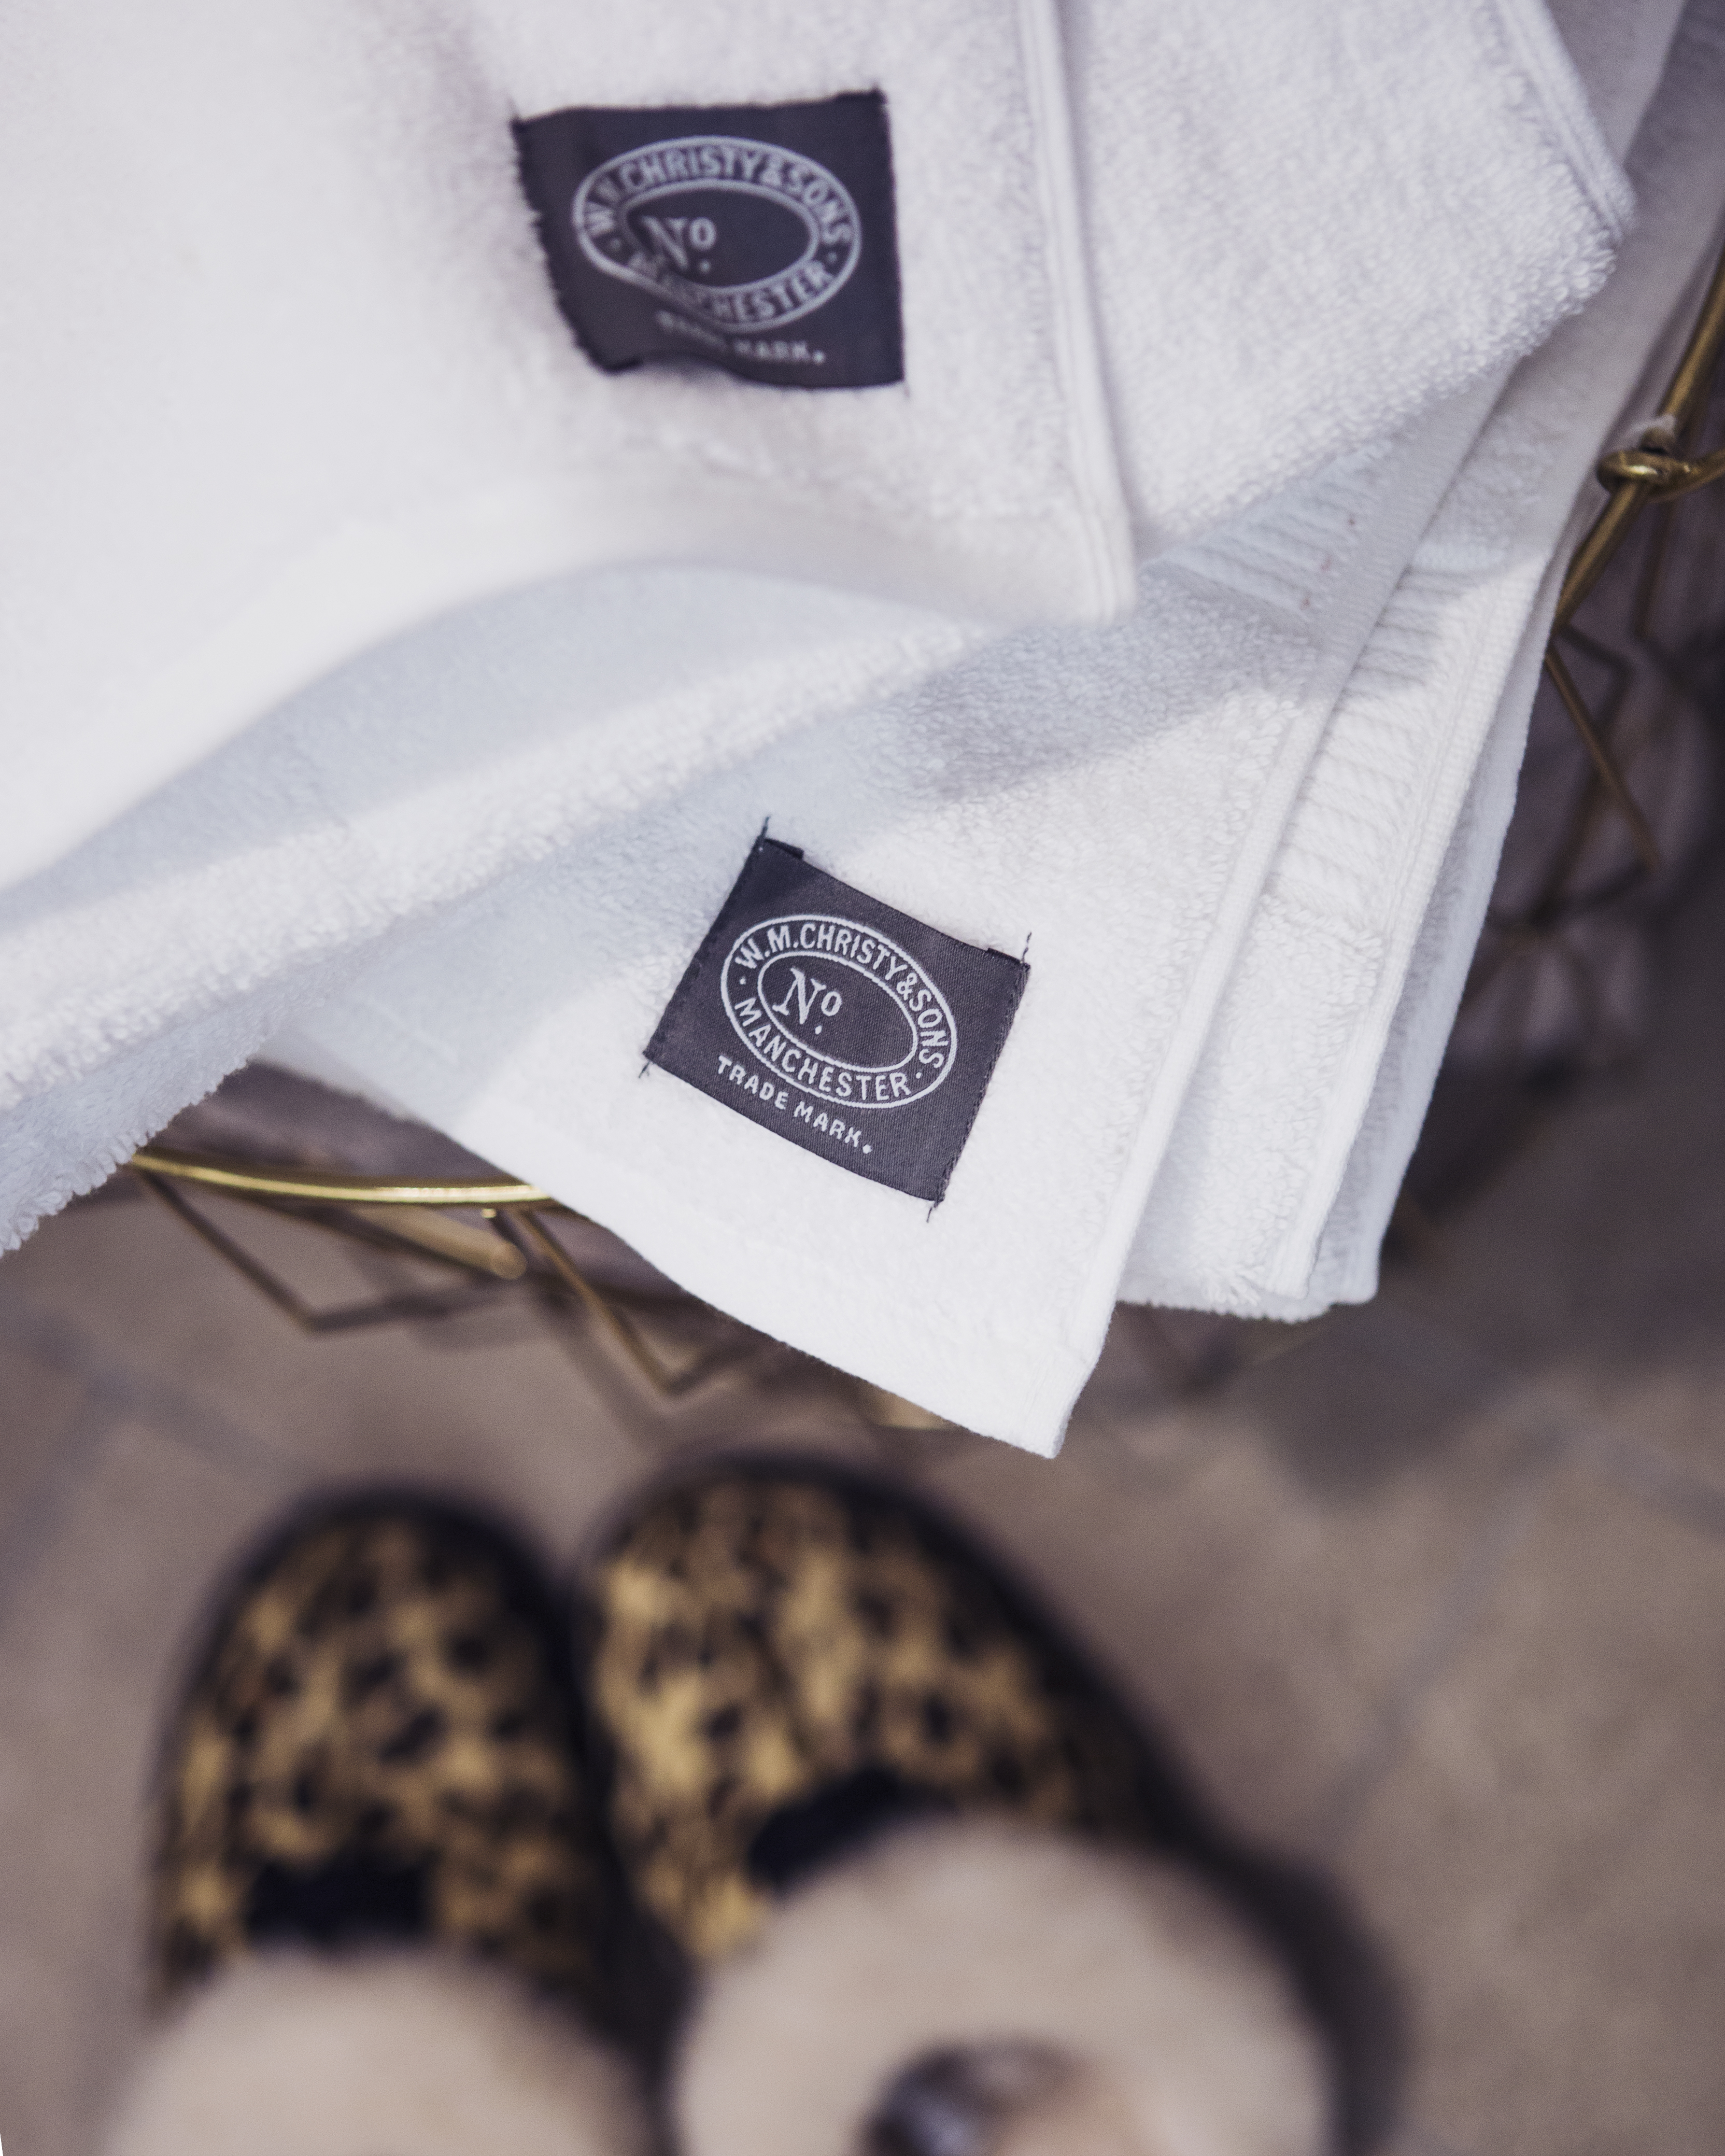 CHRISTY HYGRO TOWELS IN WHITE